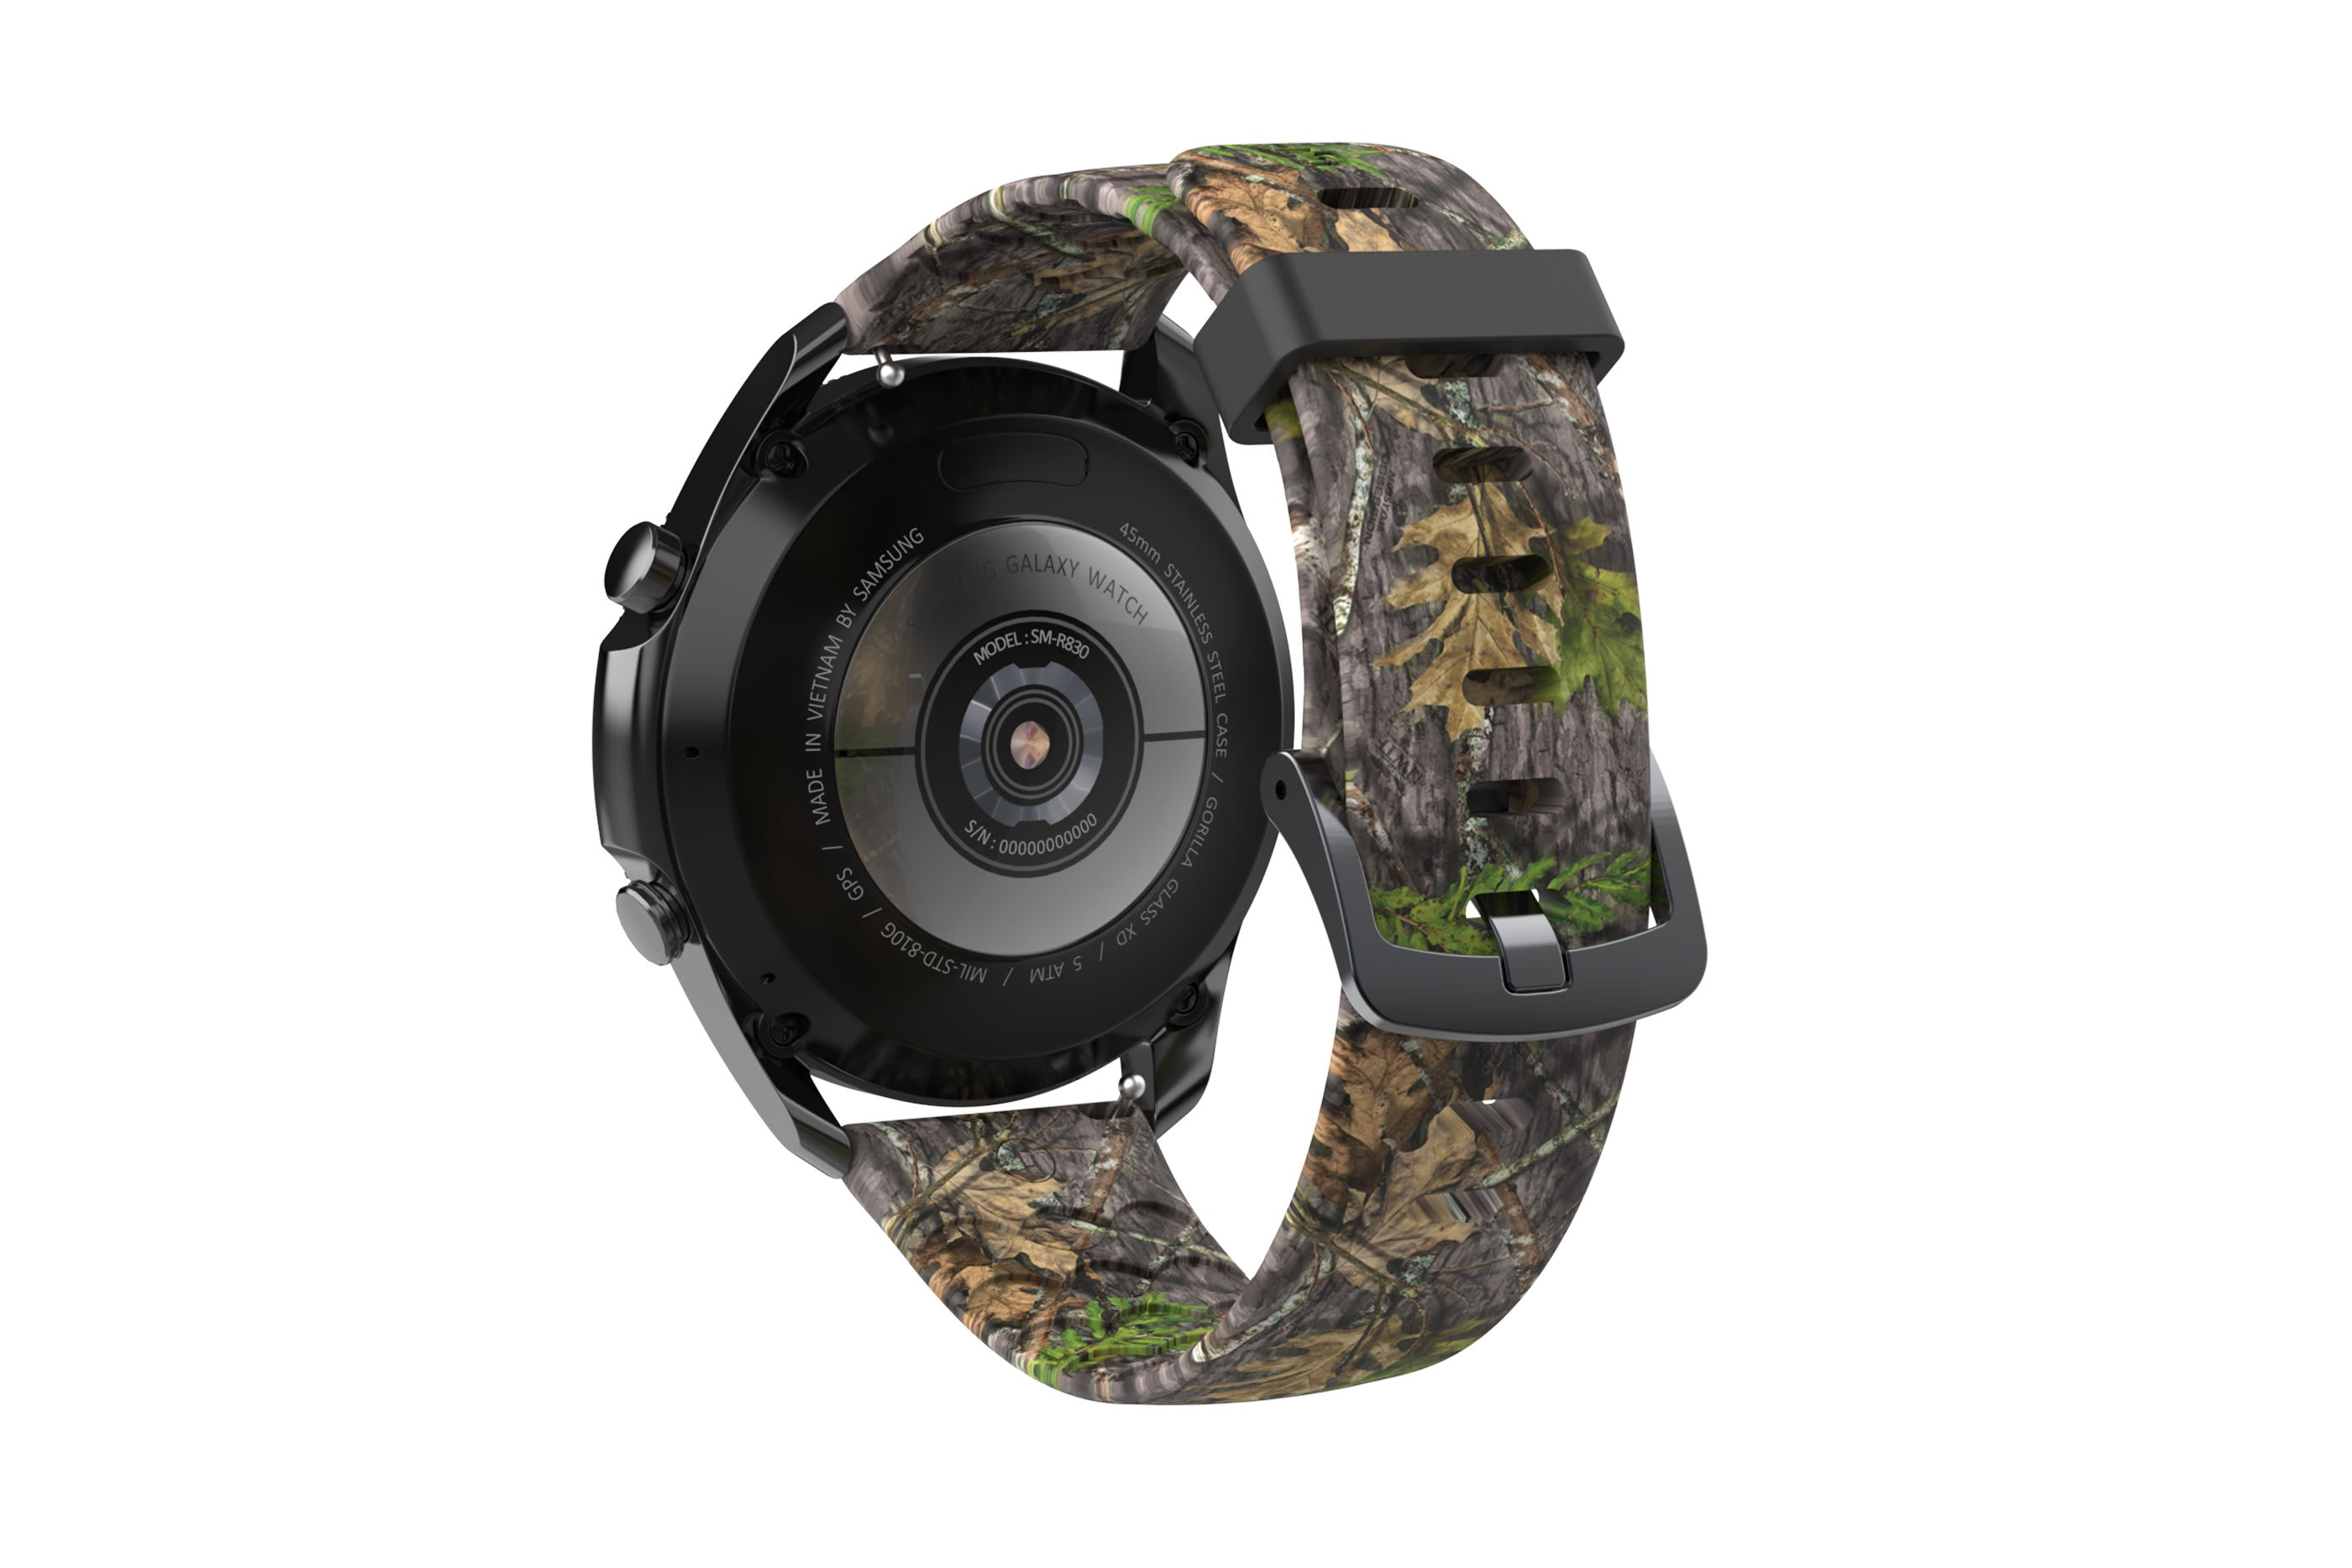 NWTF Mossy Oak Obsession  Samsung 22mm watch band with gray hardware viewed from rear